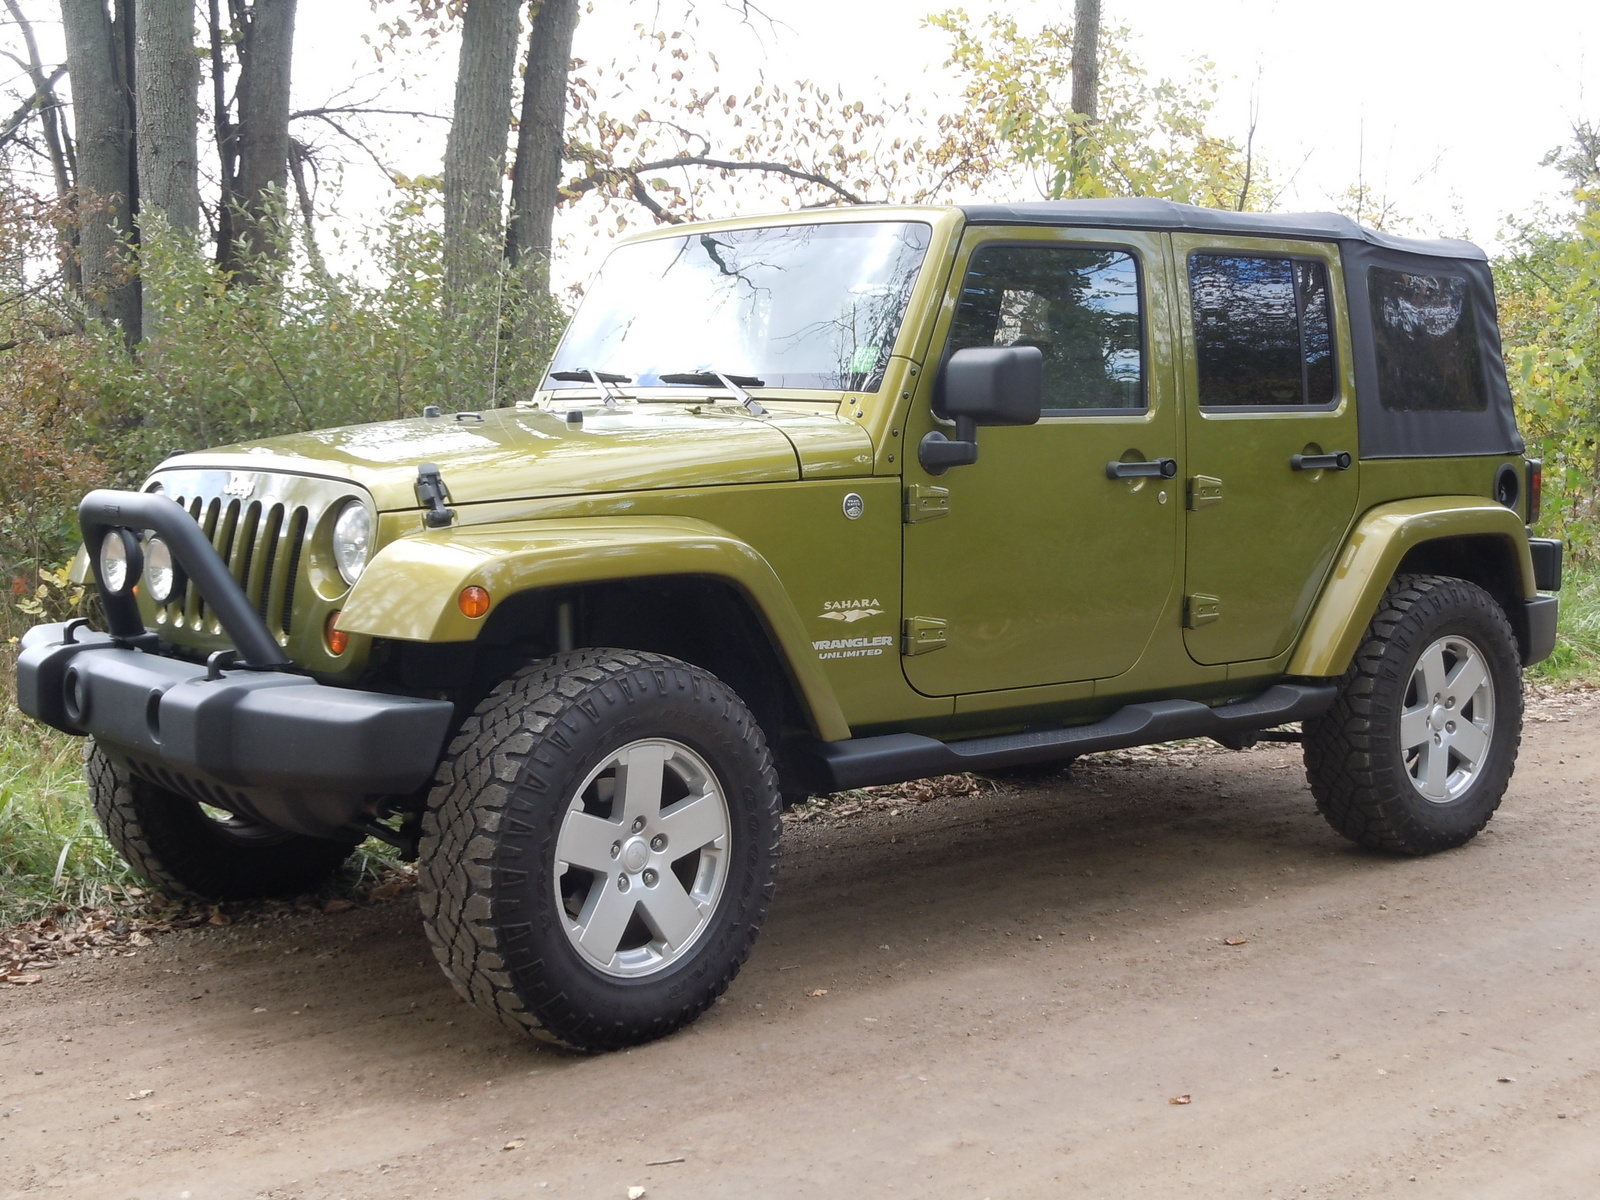 2007 jeep wrangler unlimited sahara pictures picture of image from. Cars Review. Best American Auto & Cars Review